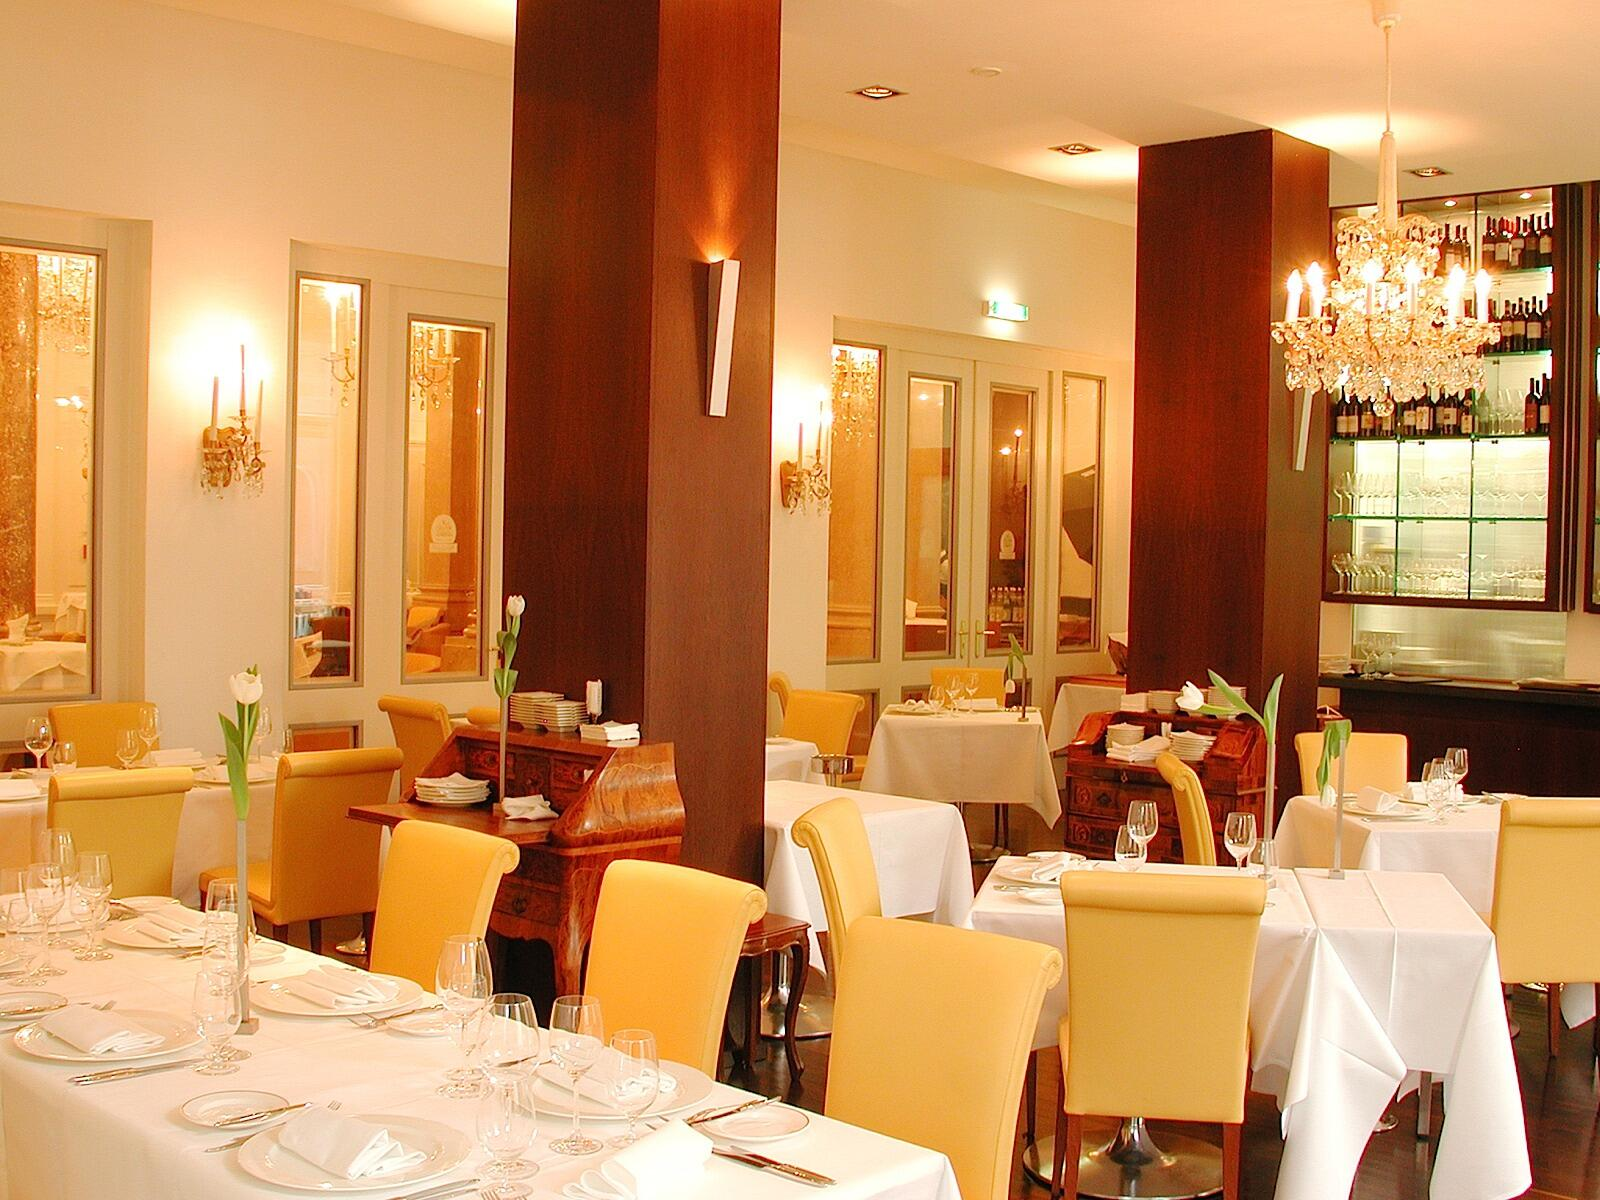 Restaurant at Ambassador Hotel in Vienna